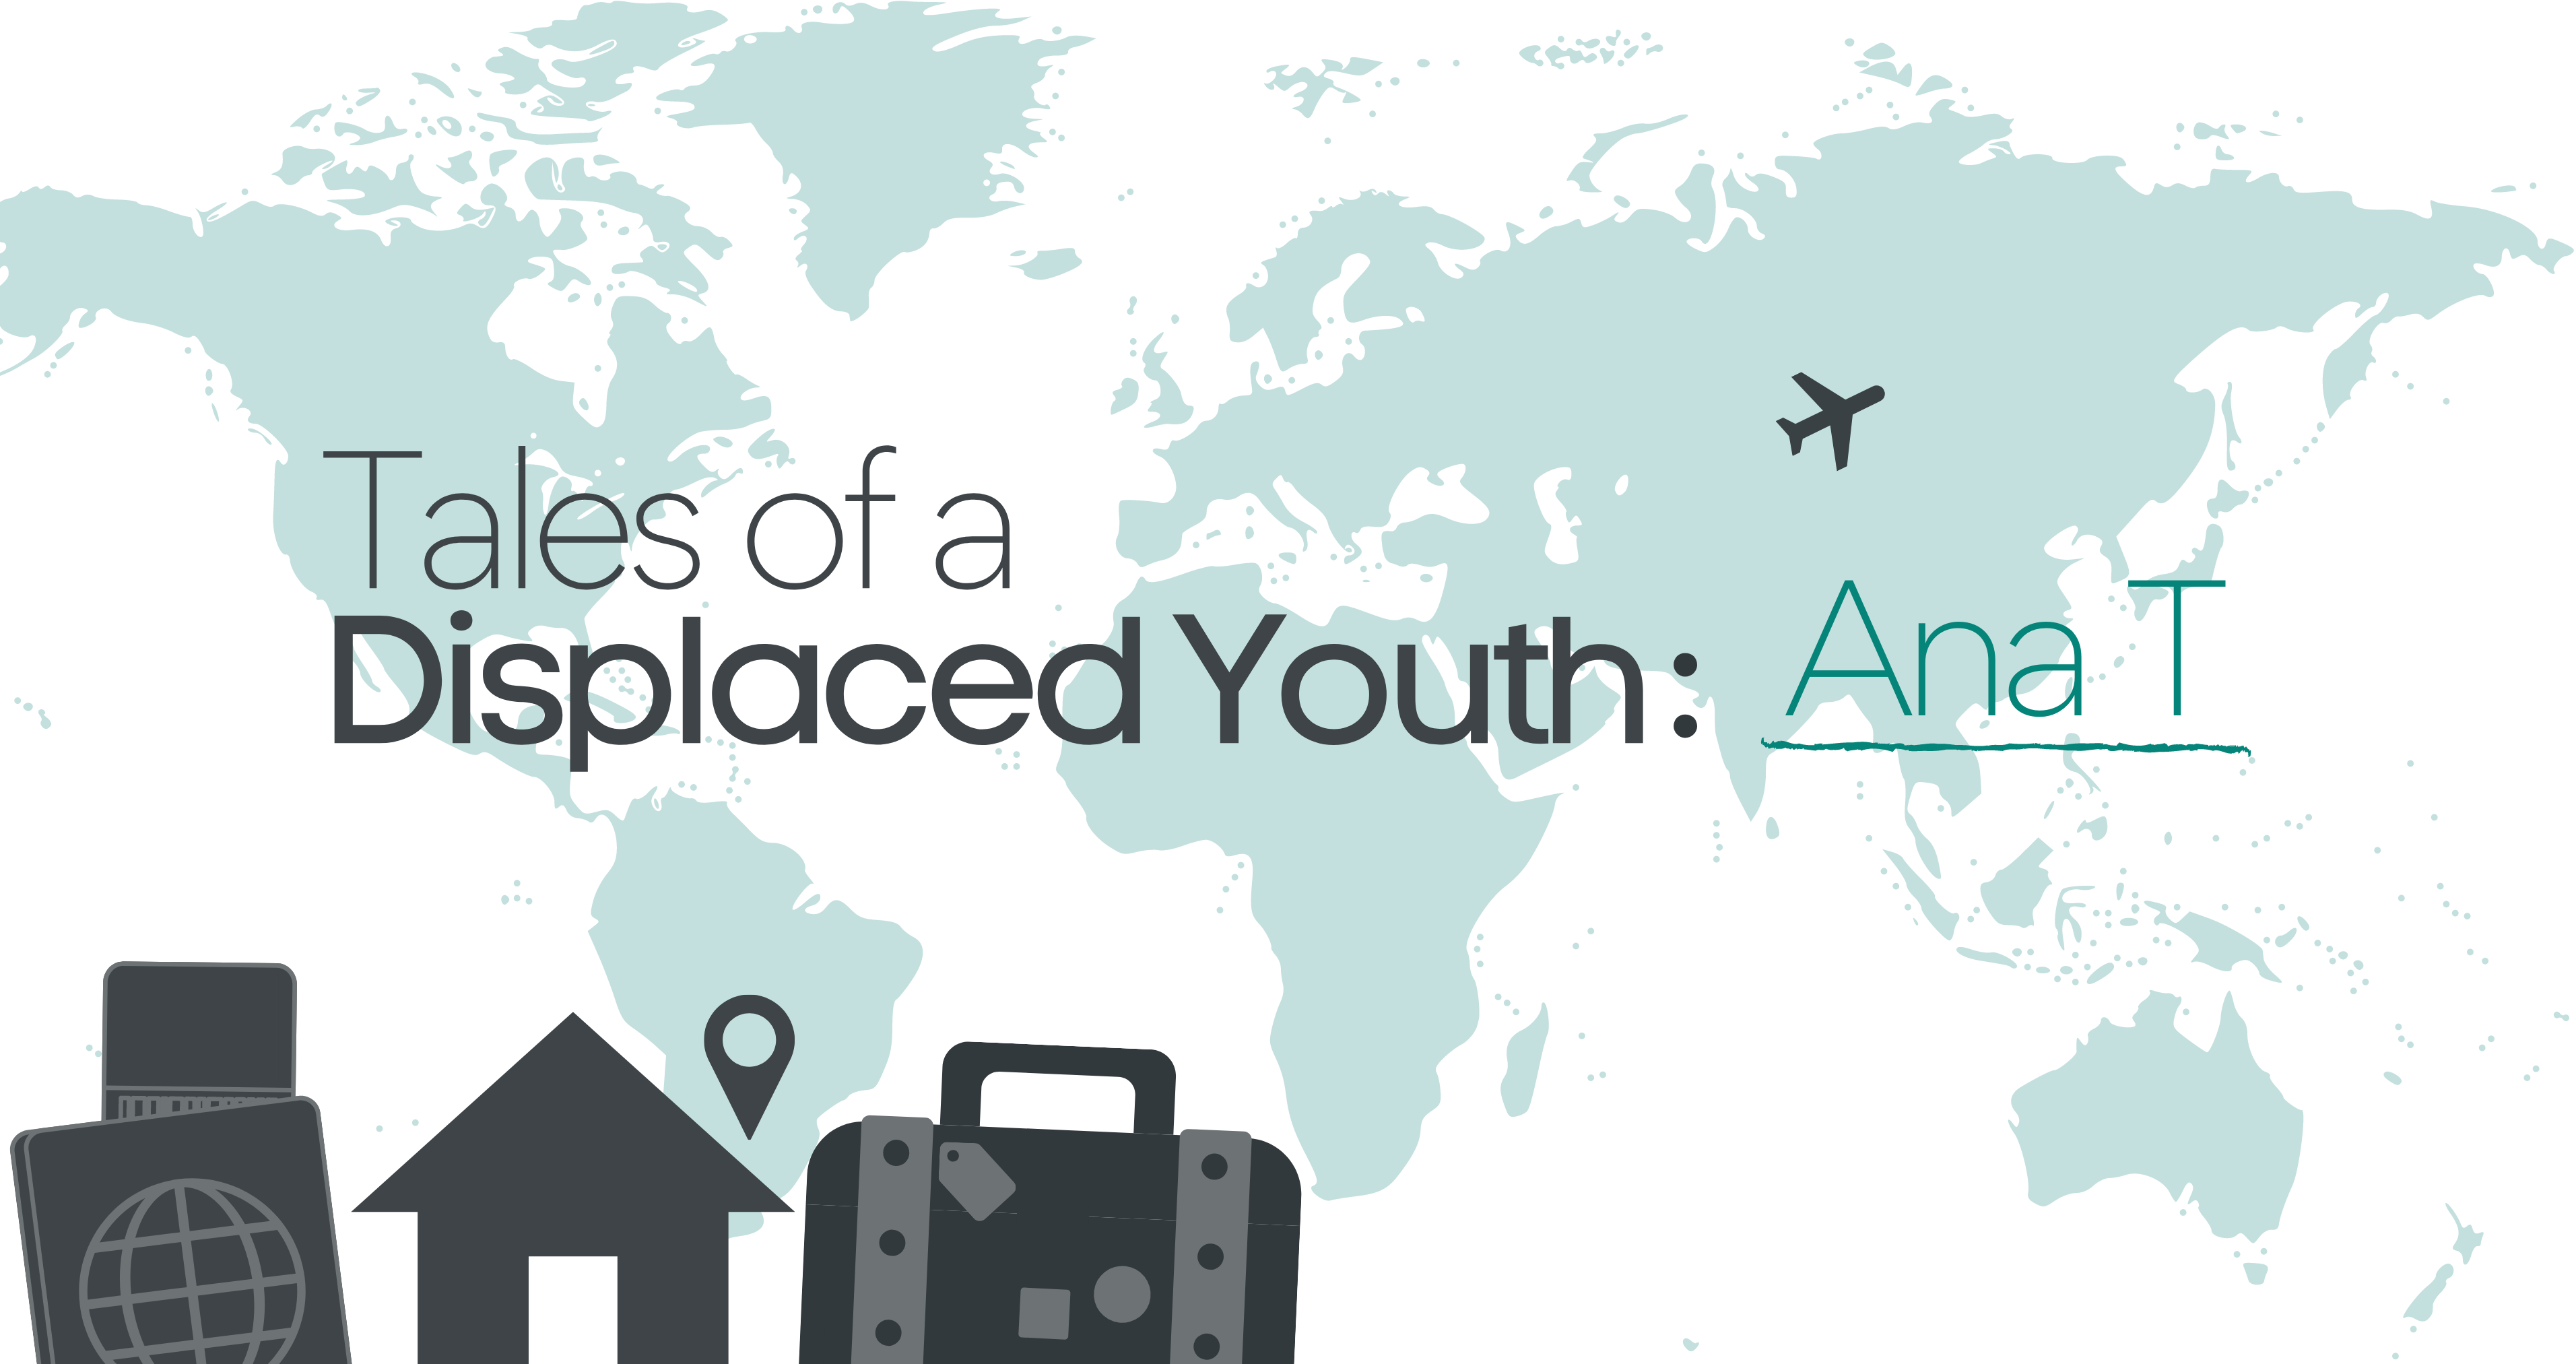 Tales of a Displaced Youth: Ana T